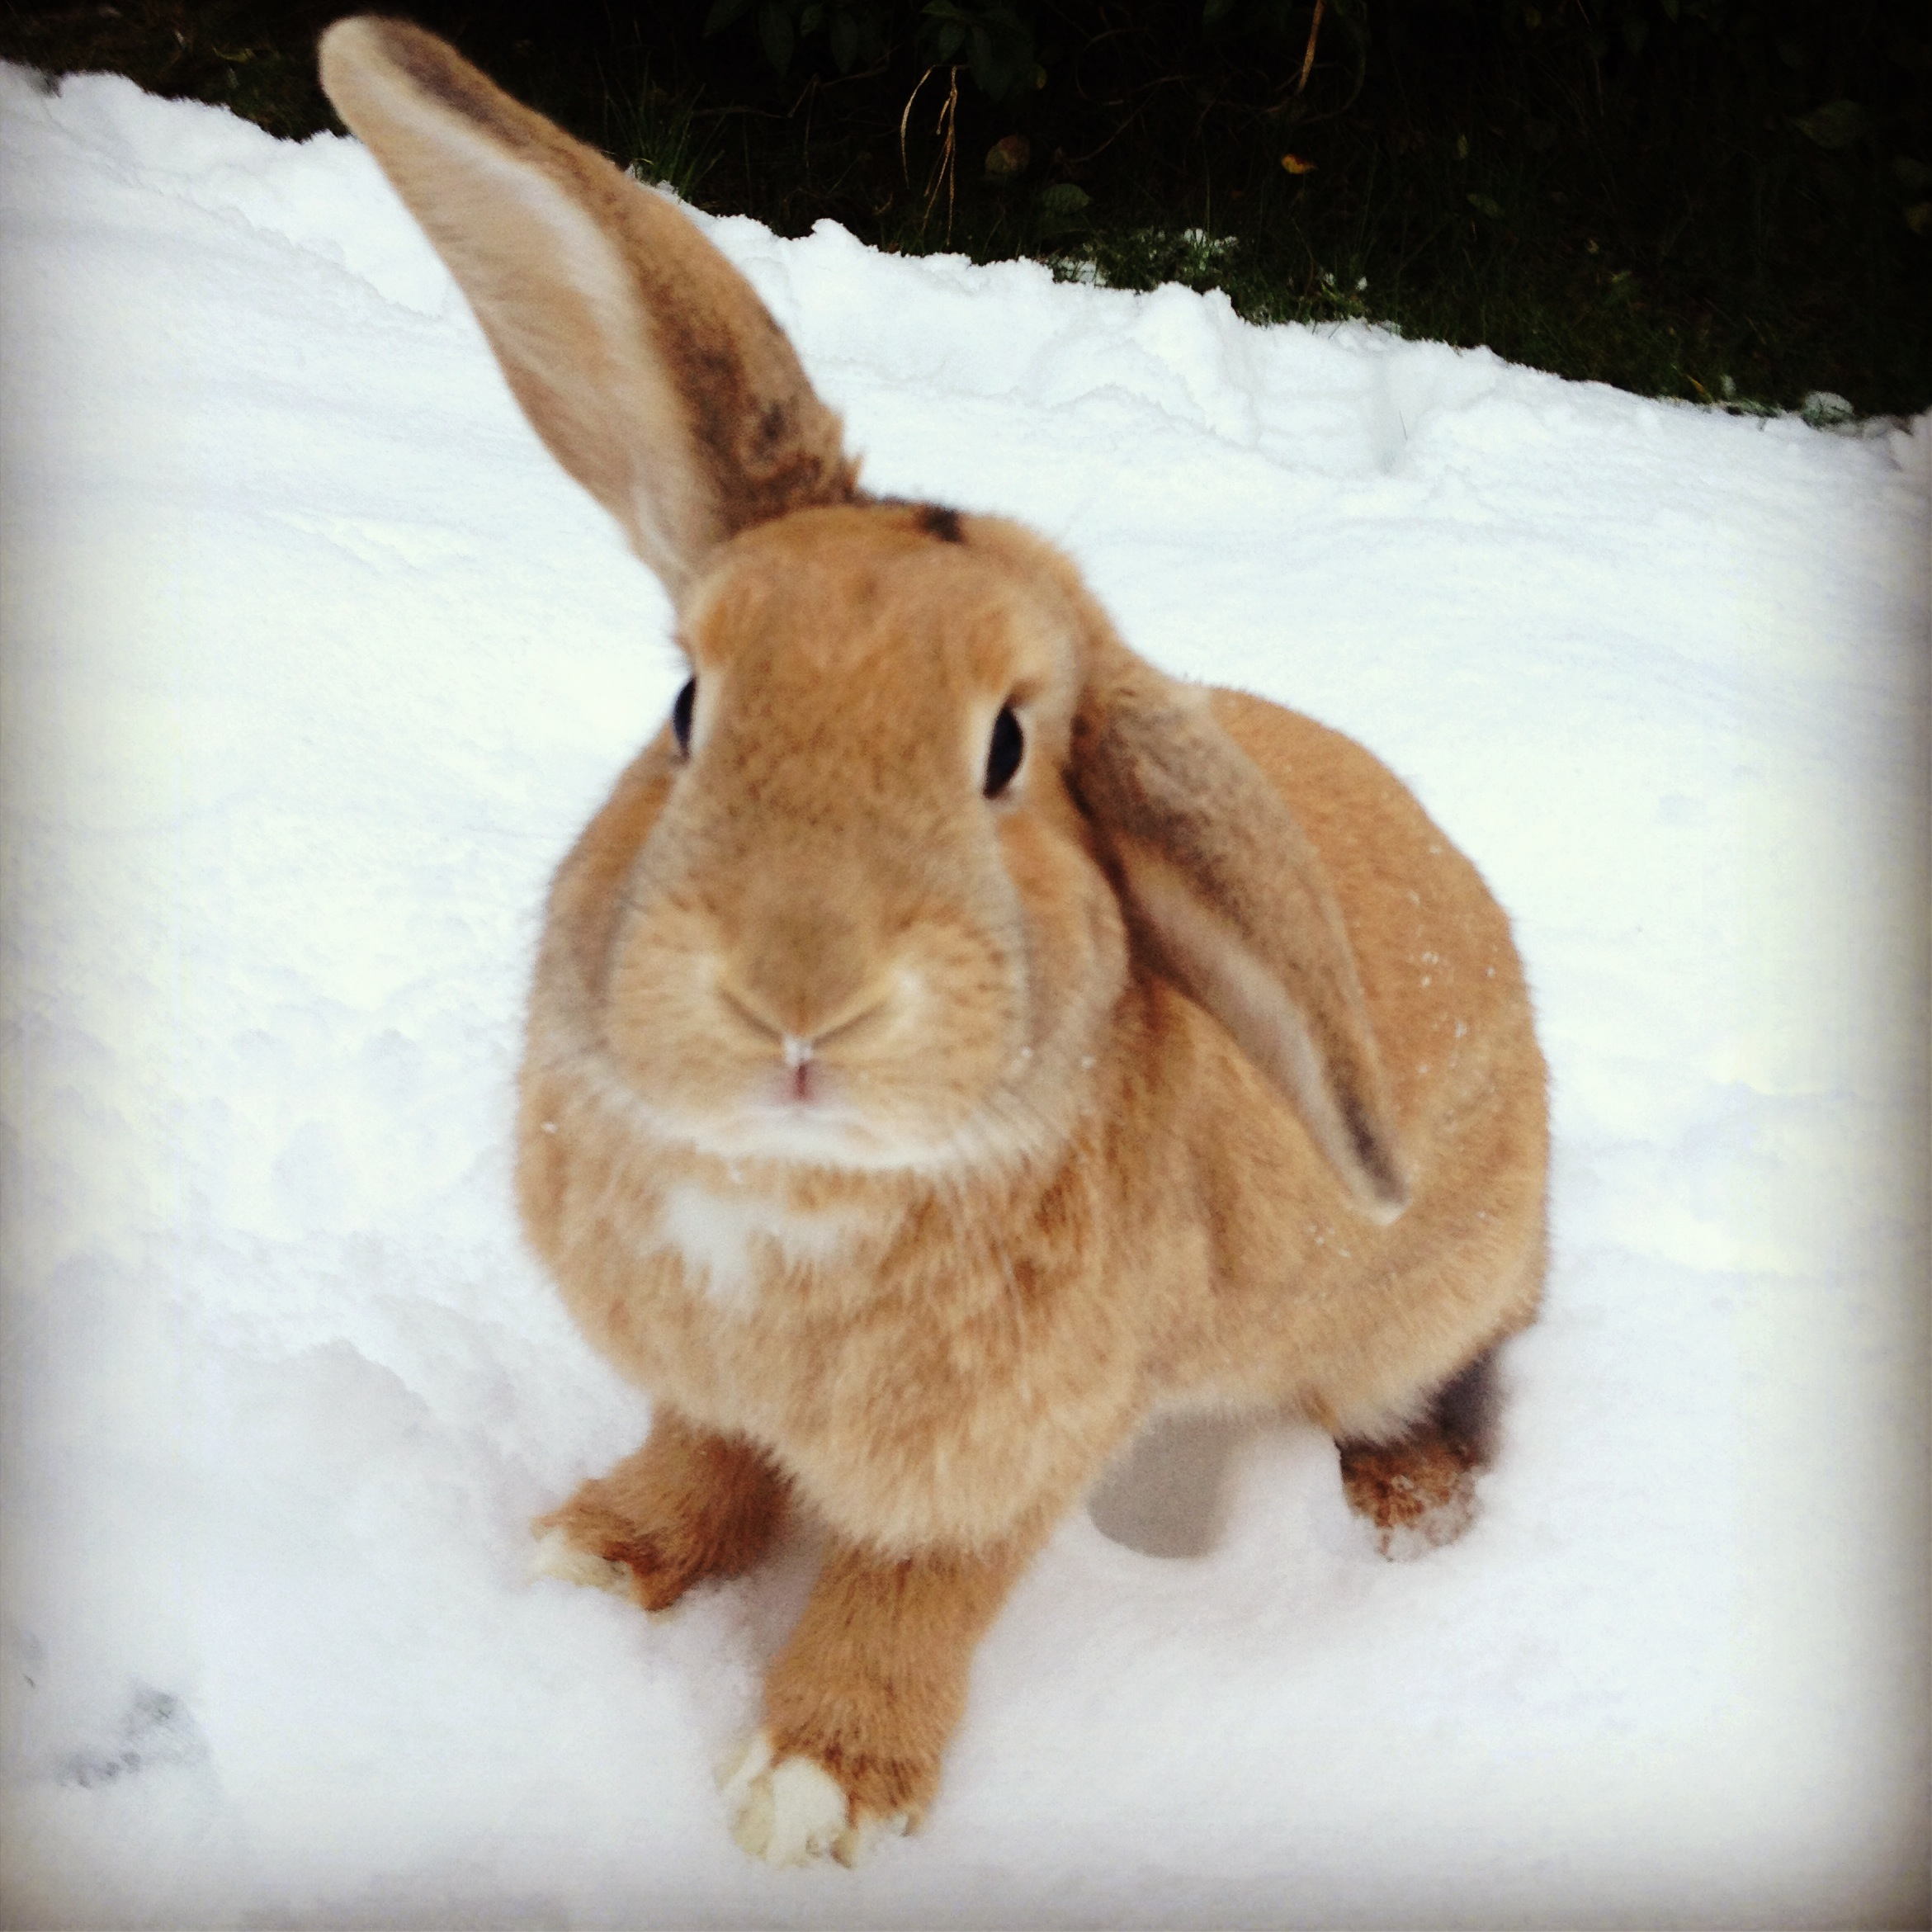 Bunny Keeps an Ear up to Listen for Snow Bunnies